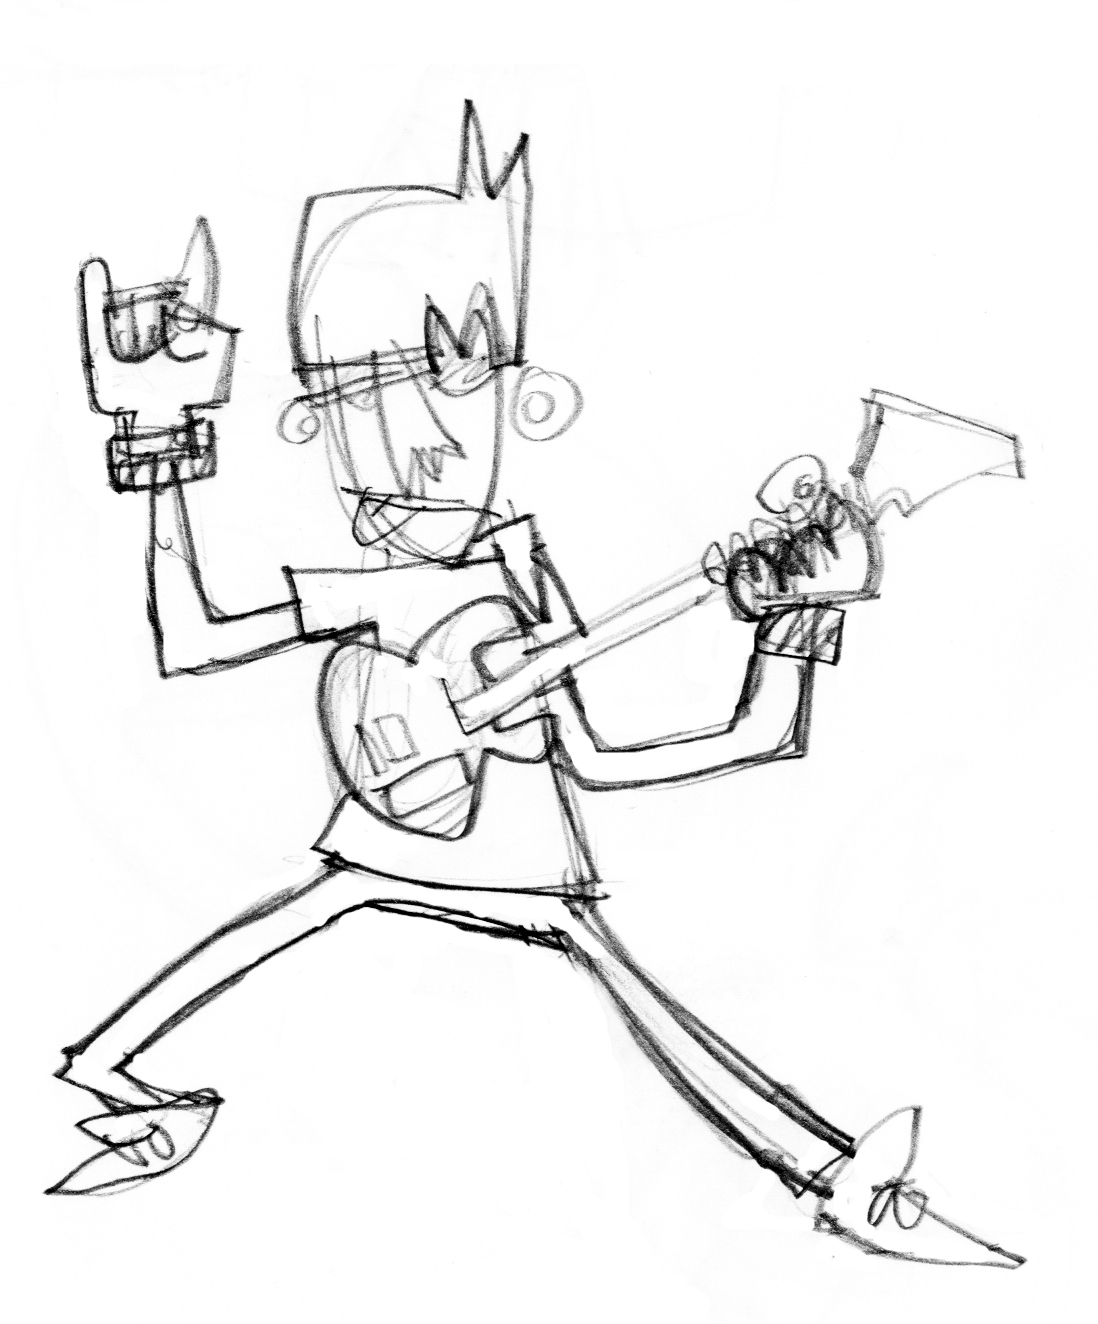 Guy with Guitar Sketch outline